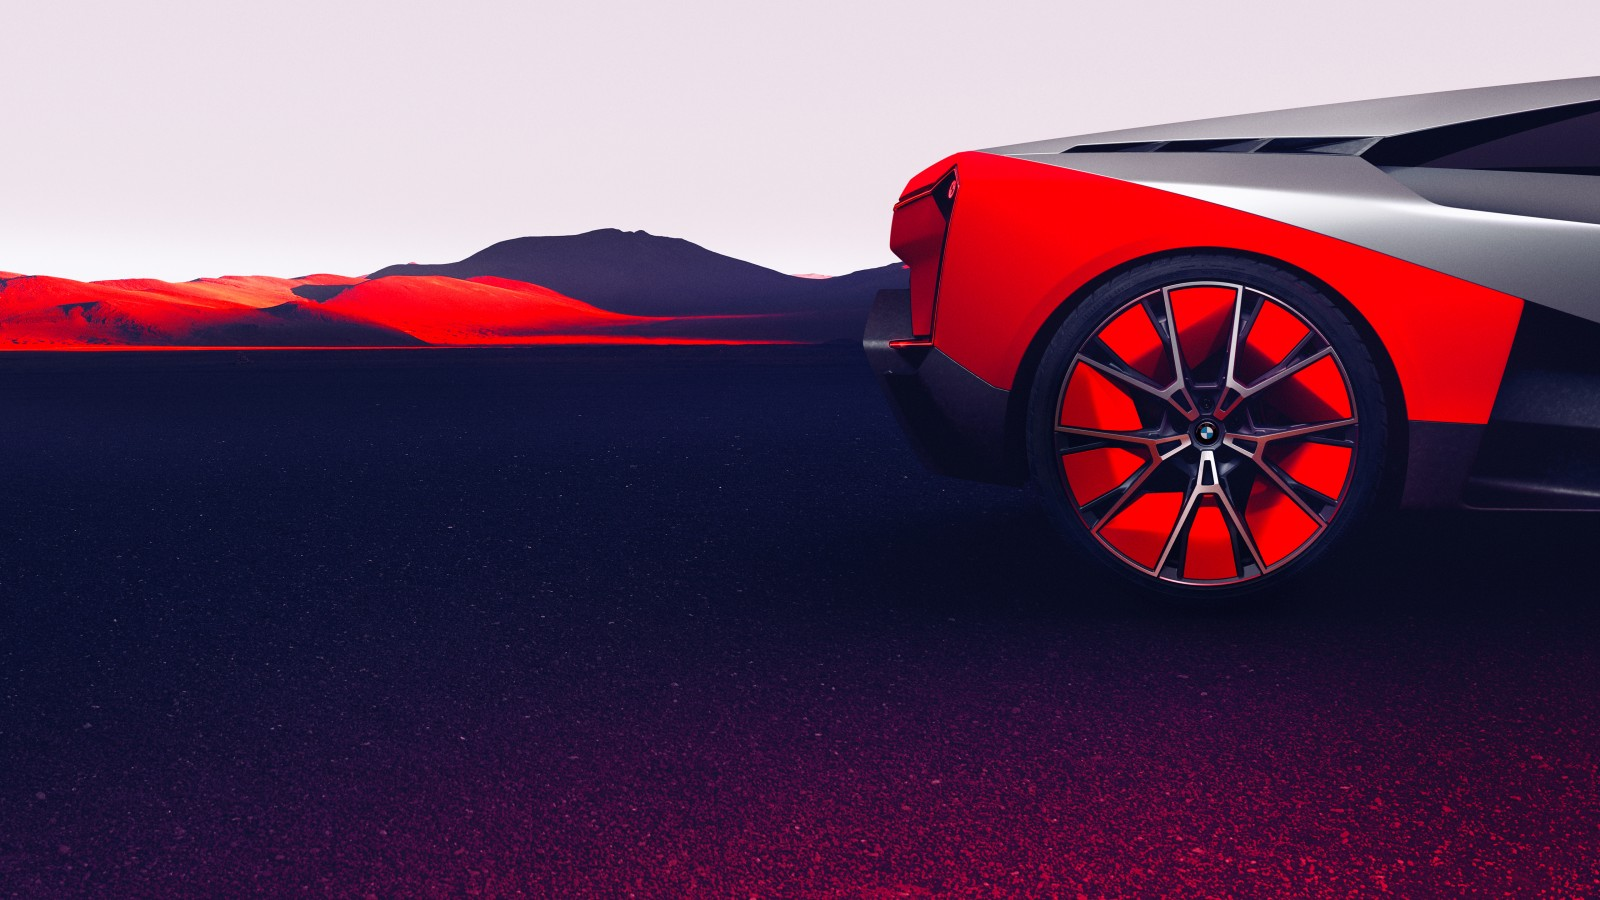 BMW Vision M NEXT 2019 4K 2 Wallpaper | HD Car Wallpapers ...